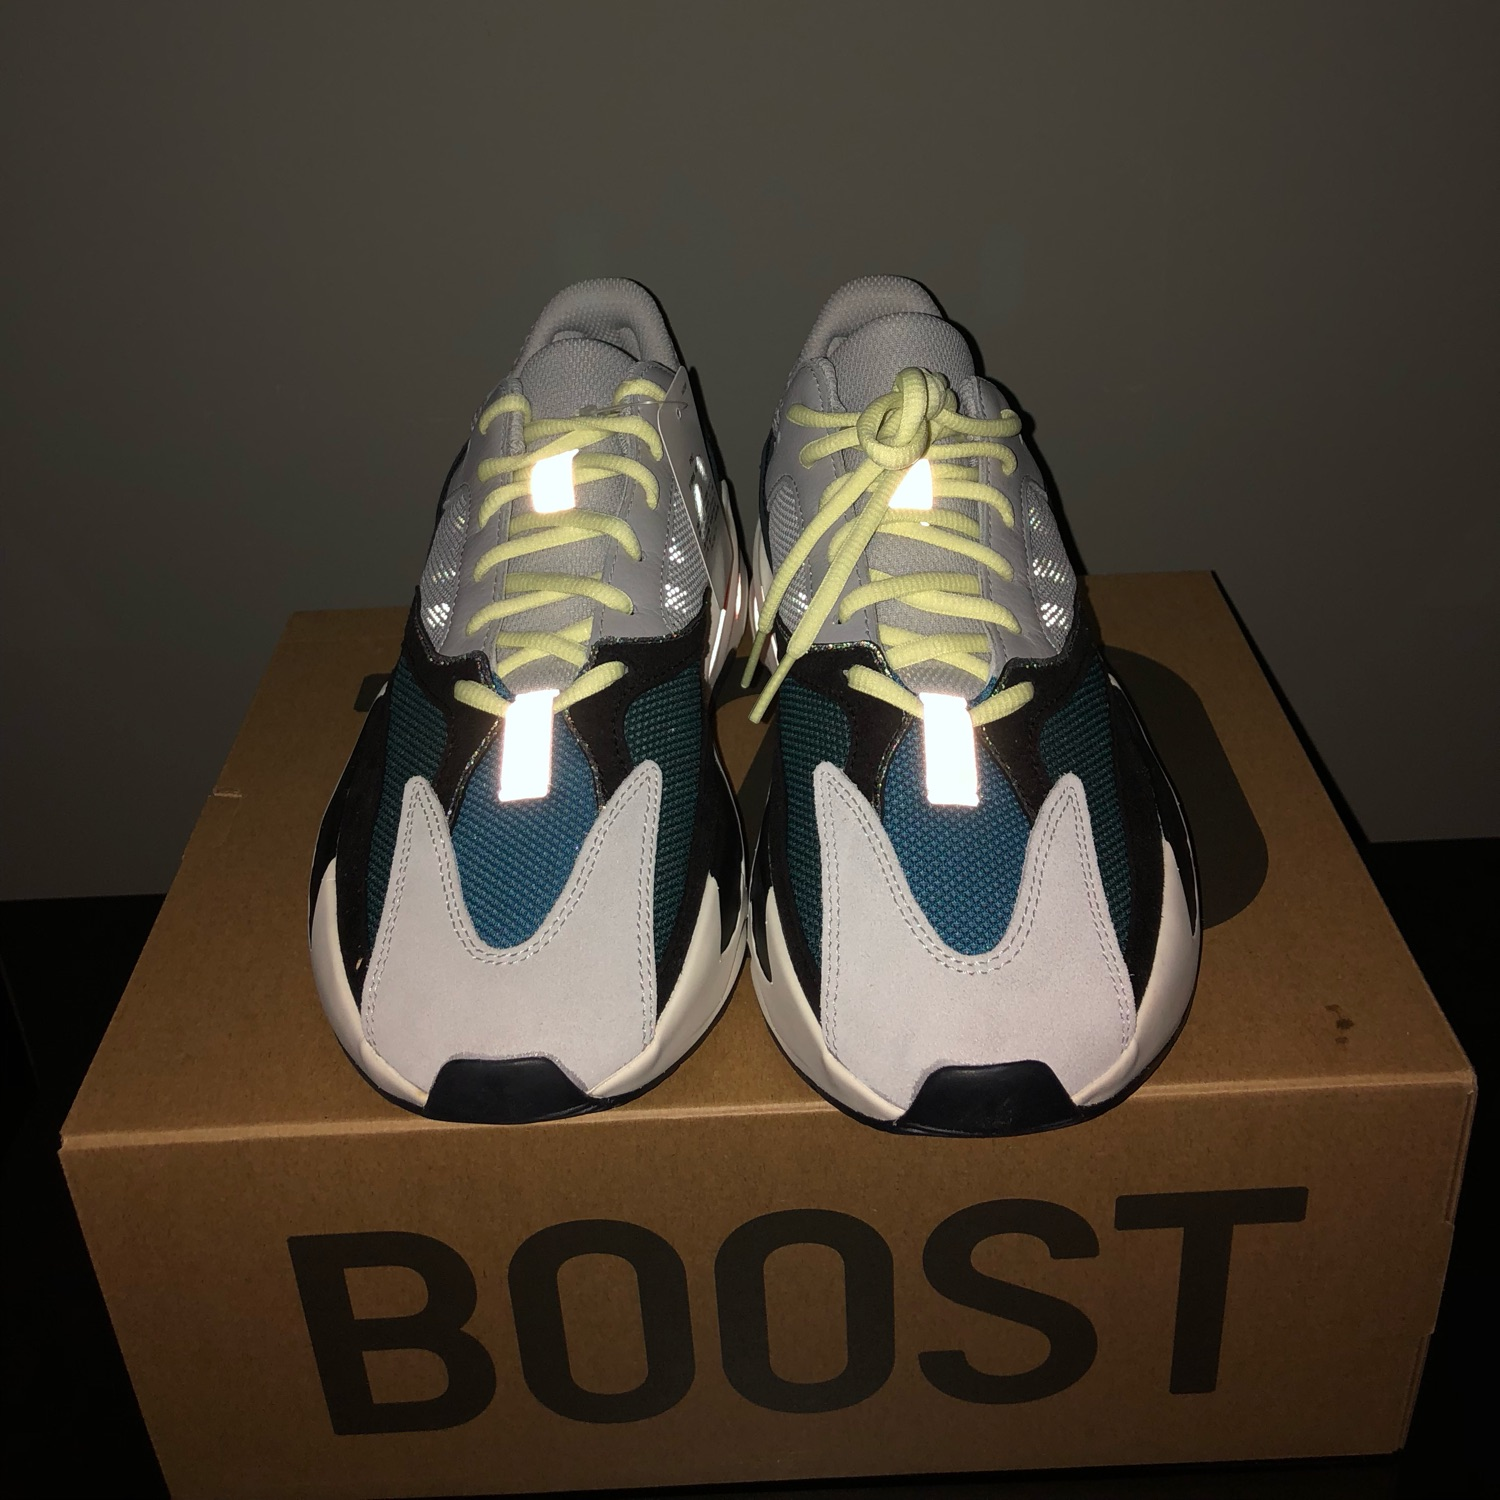 a9097a37ad2dc Adidas Yeezy Boost Wave Runner 700 Deadstock